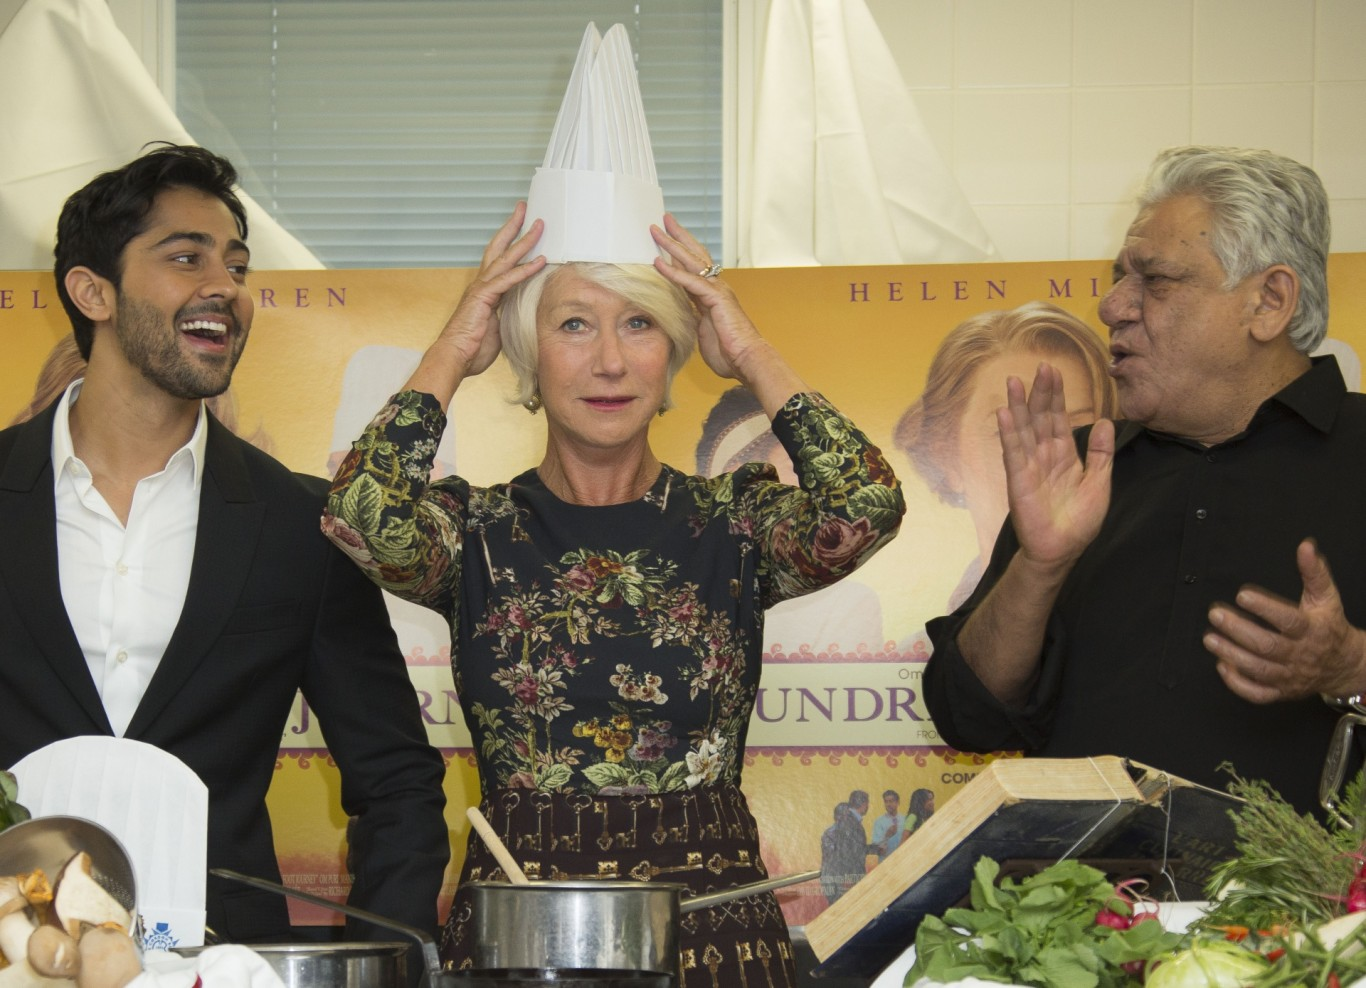 Helen Mirren puts on a chef's hat as actors Om Puri, right and Manish Dayal look on, at culinary school le Cordon Bleu for food-themed photo call for the film The One Hundred Foot Journey